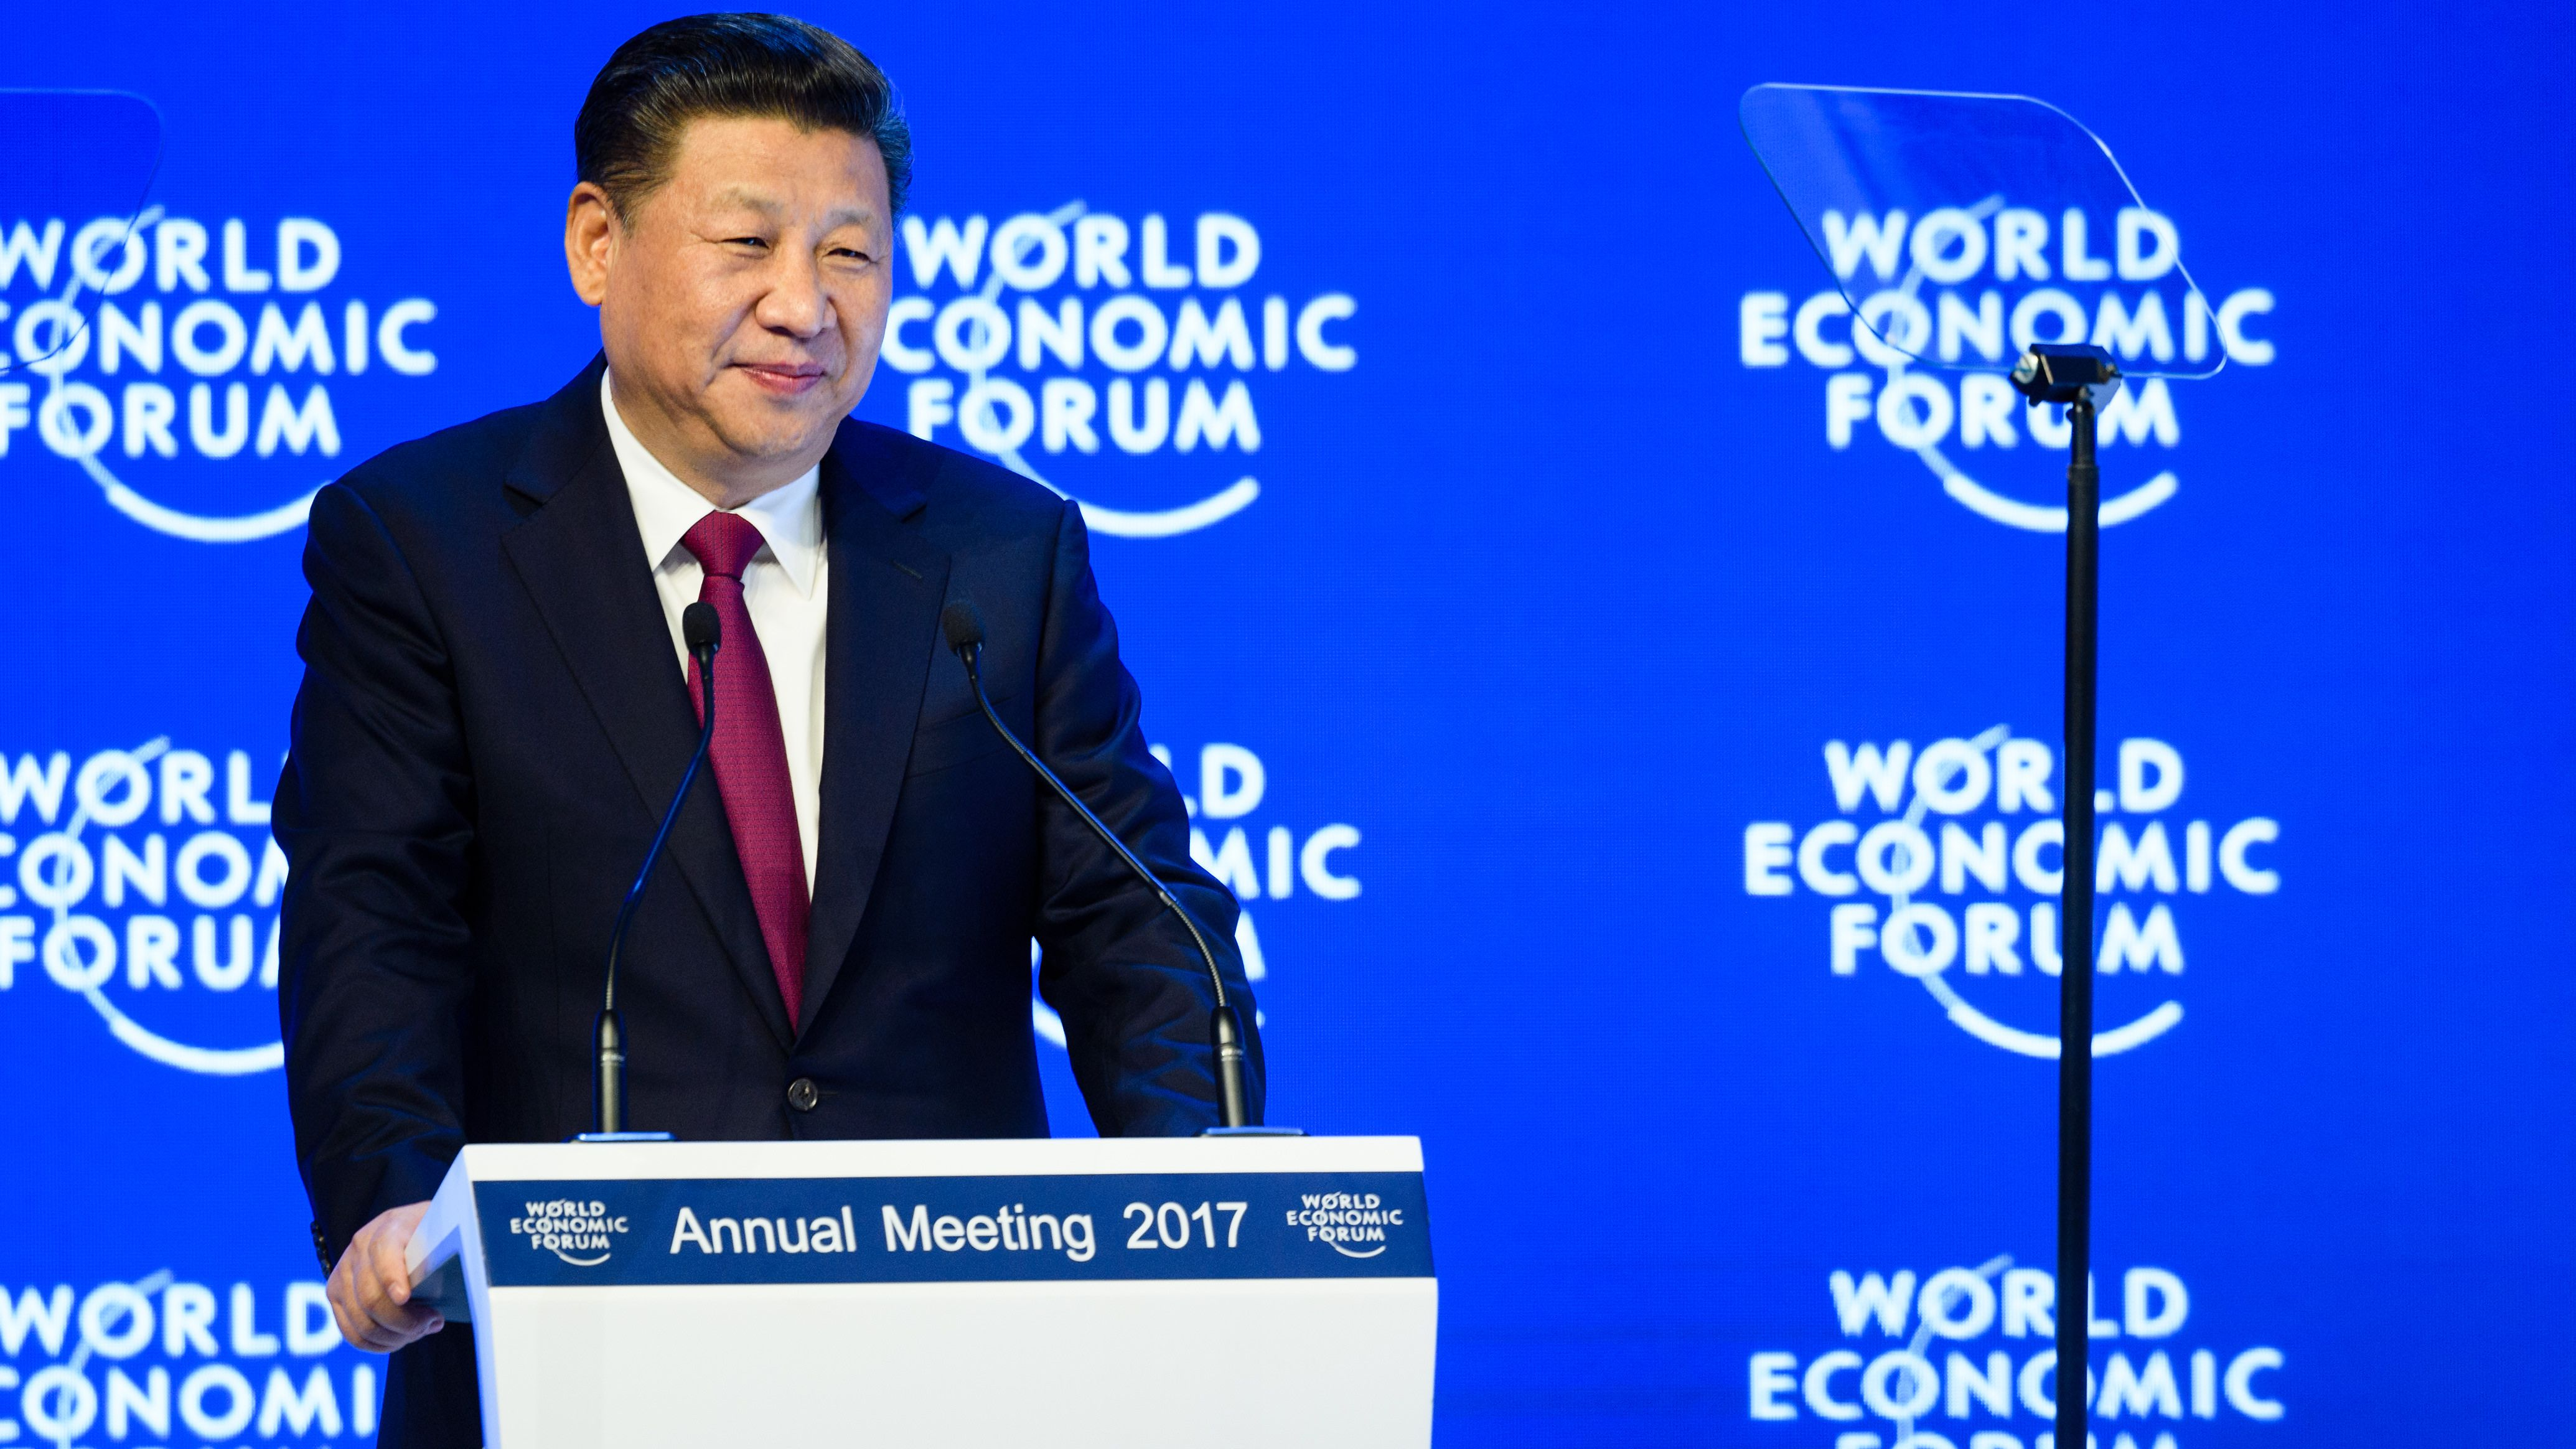 Xi Jinping, President of the People's Republic of China speaking at the Annual Meeting 2017 of the World Economic Forum in Davos, January XX, 2017. Copyright by World Economic Forum / Manuel Lopez